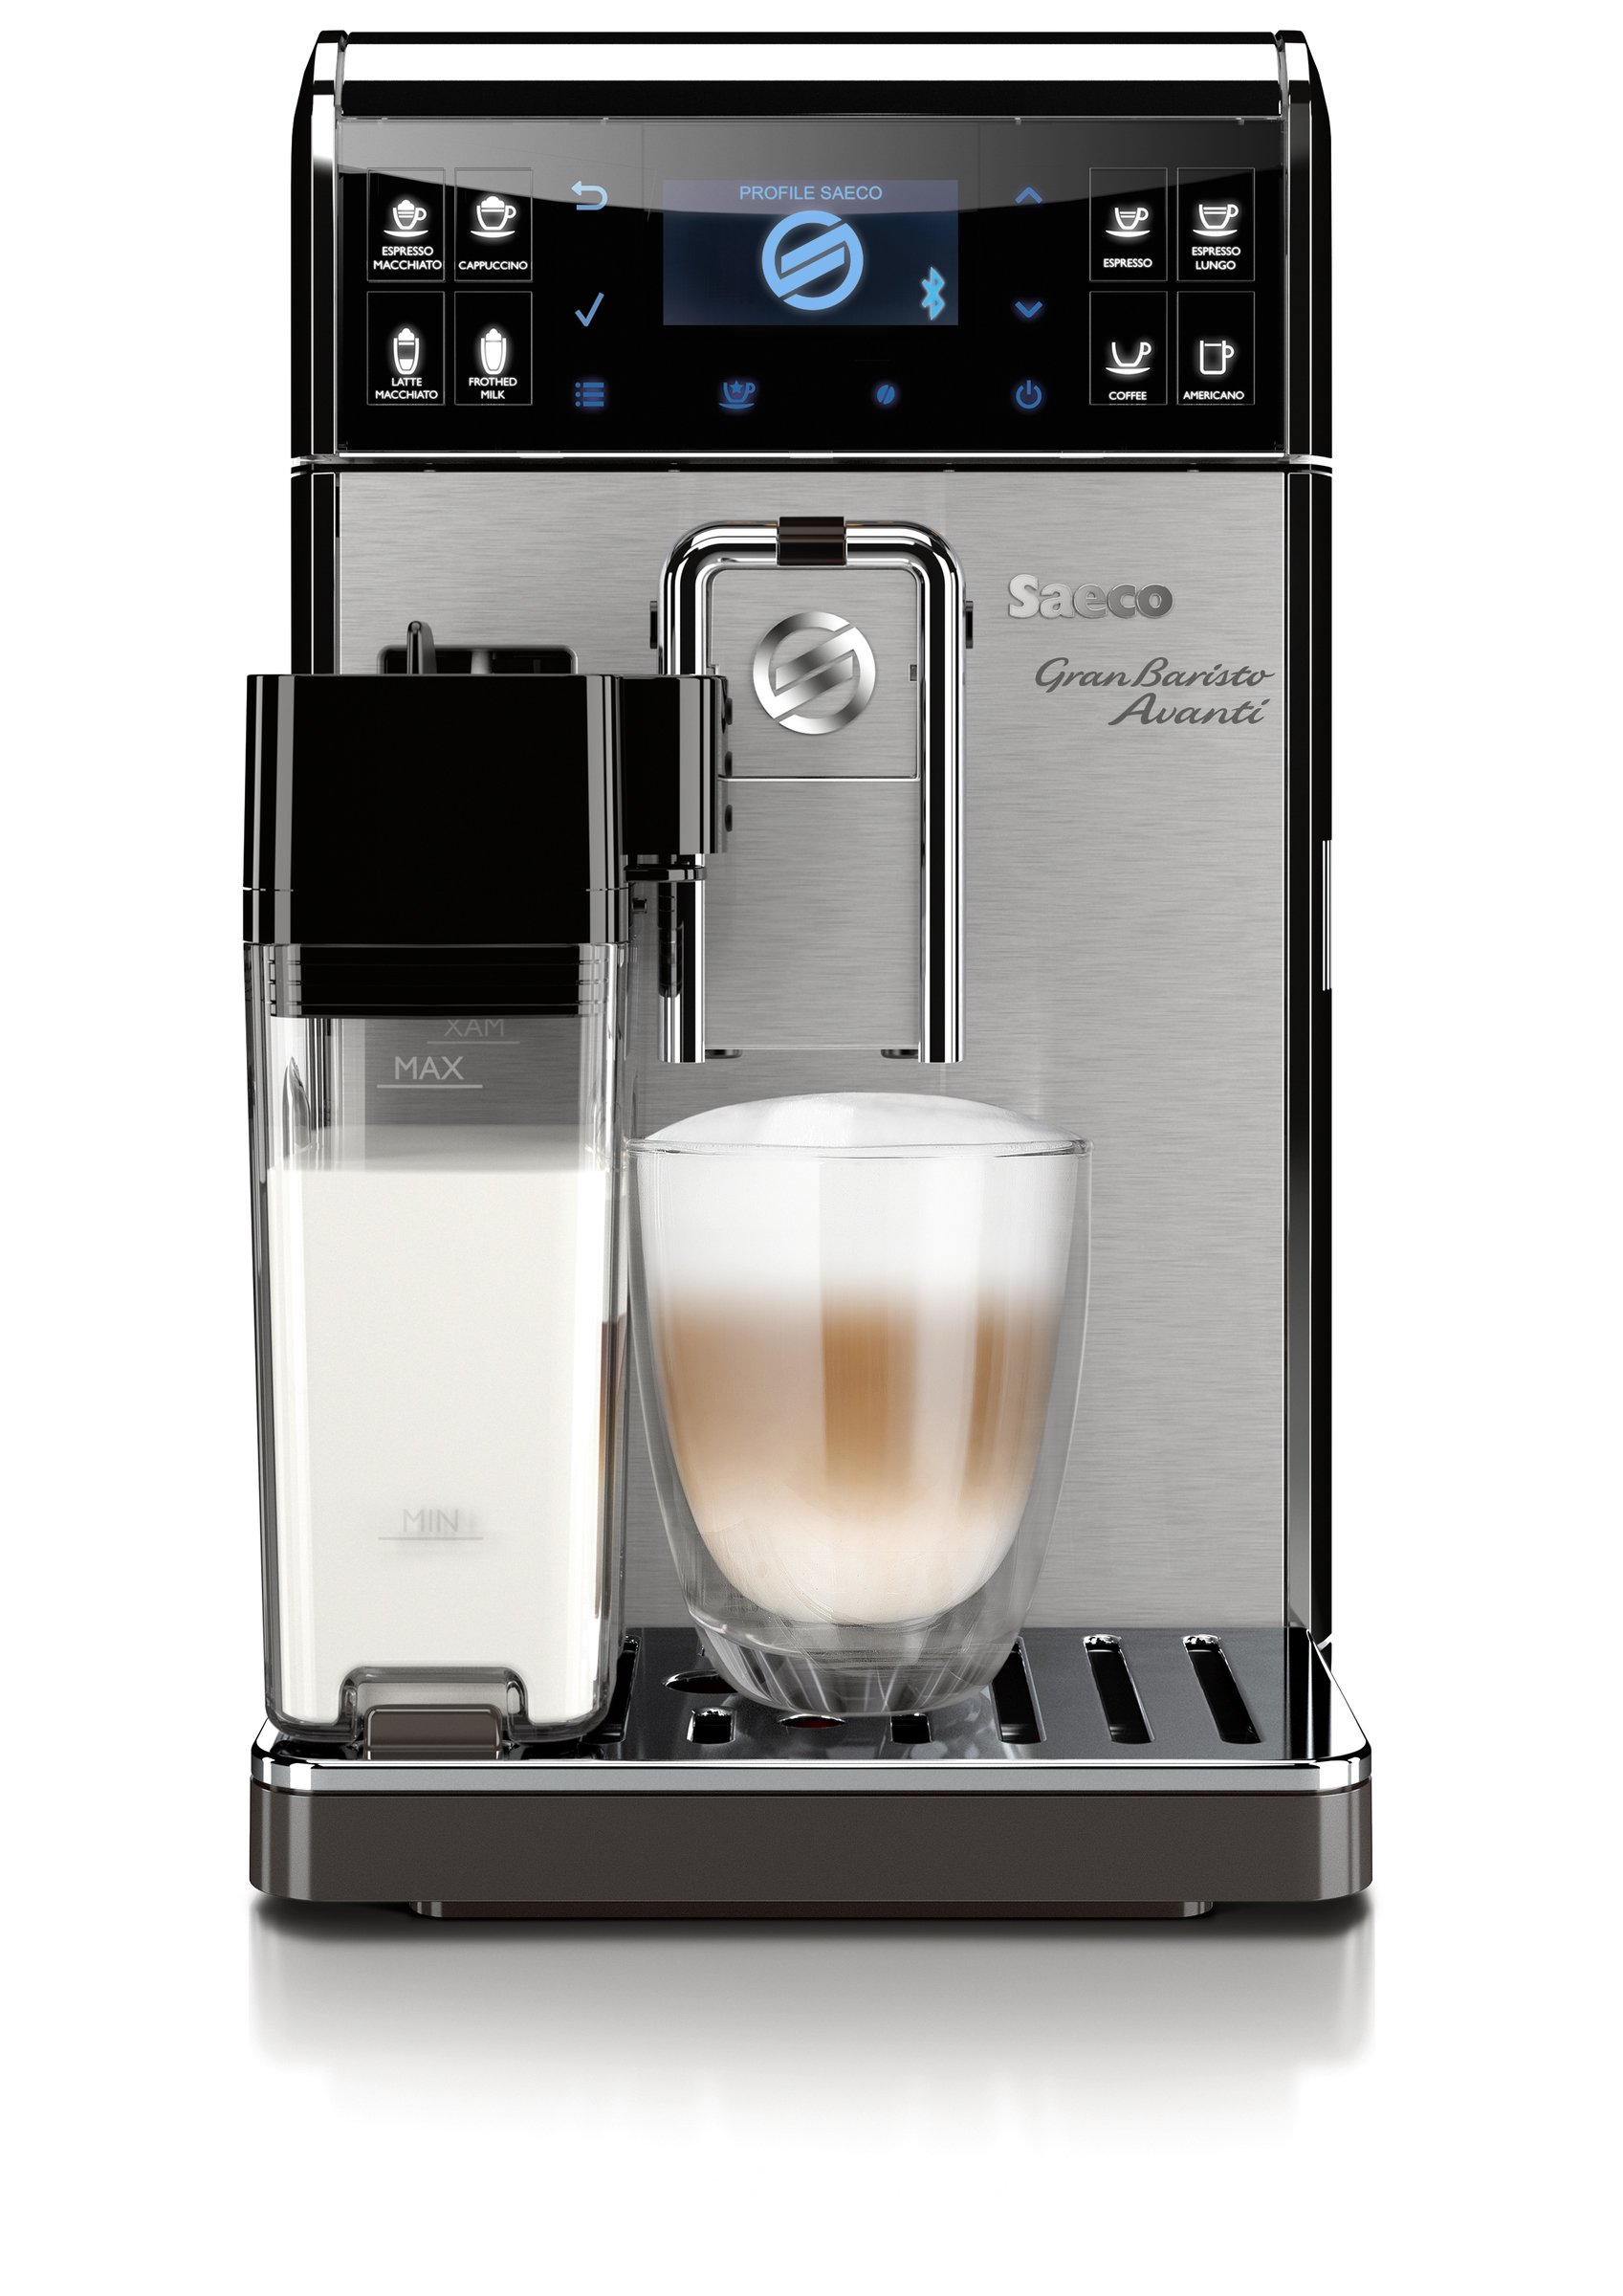 Saeco GranBaristo Avanti Super Automatic, Connected, Espresso Machine, Stainless Steel, HD8967/47 by Saeco